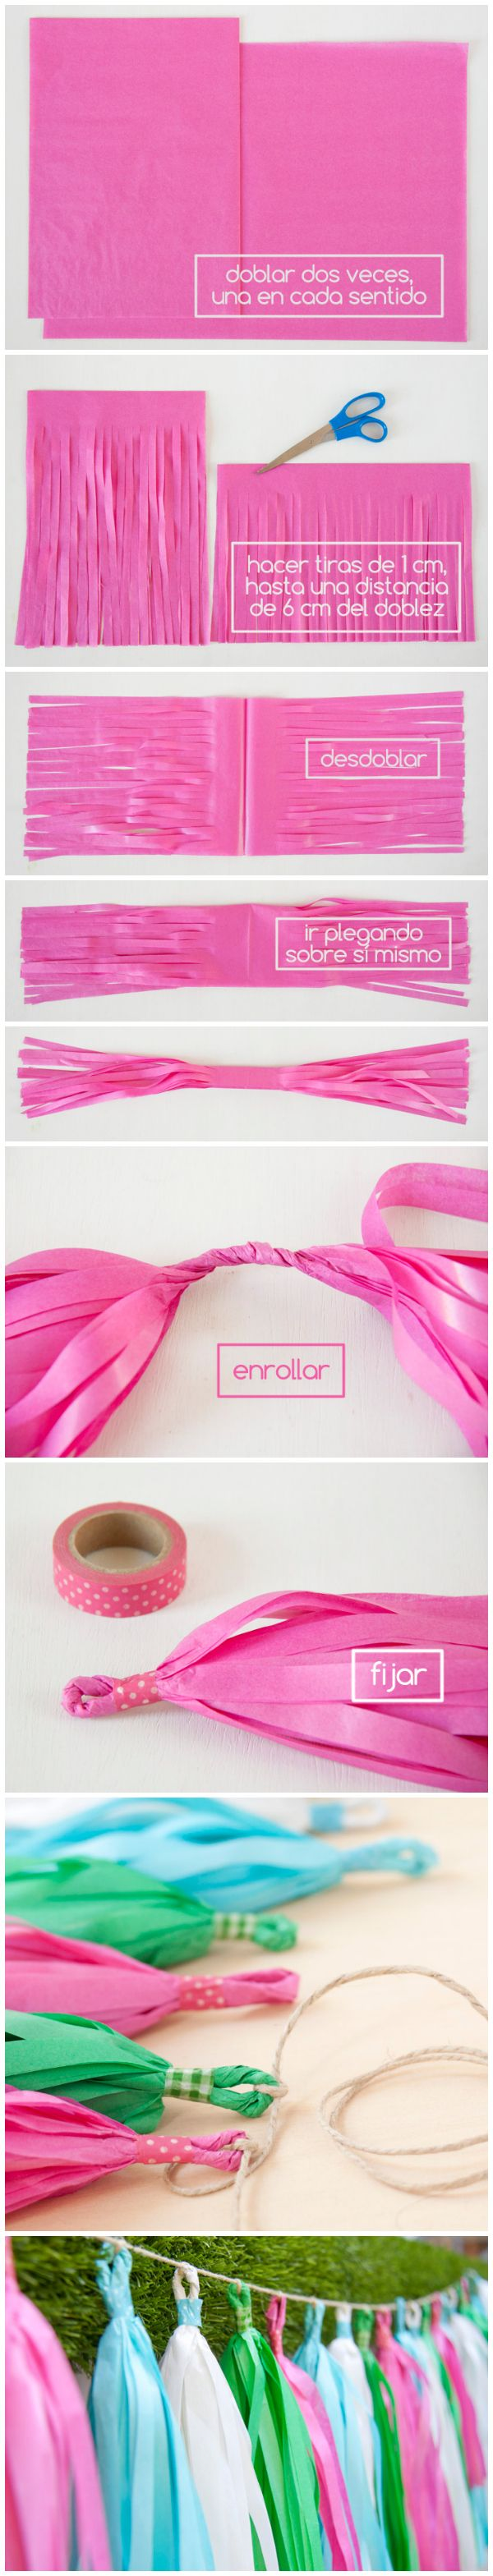 Tutorial DIY: cómo hacer tassel garlands. www.clinicadentalmagallanes.com